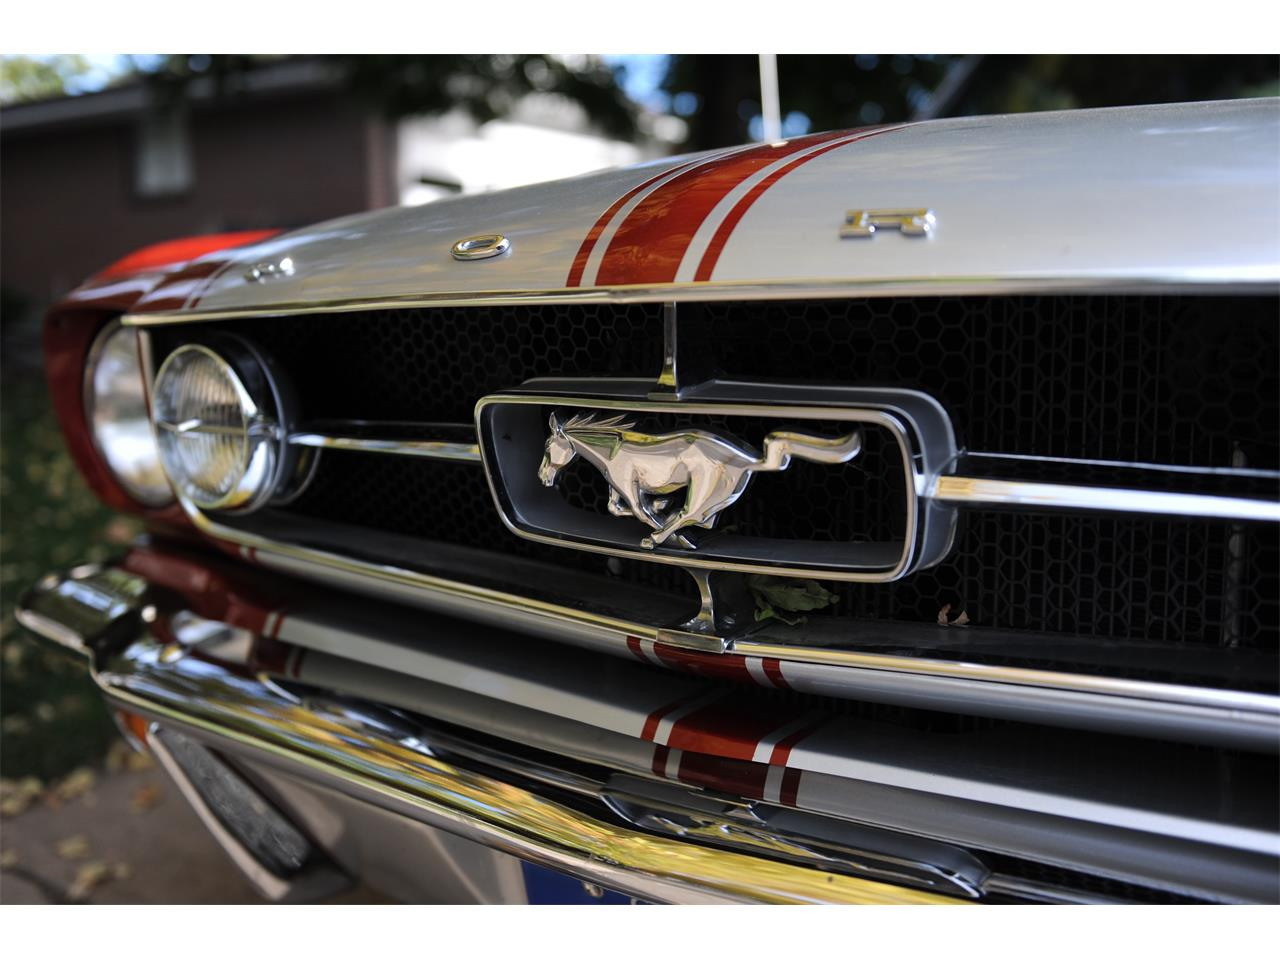 Large Picture of '65 Mustang - $48,500.00 Offered by a Private Seller - OO0C